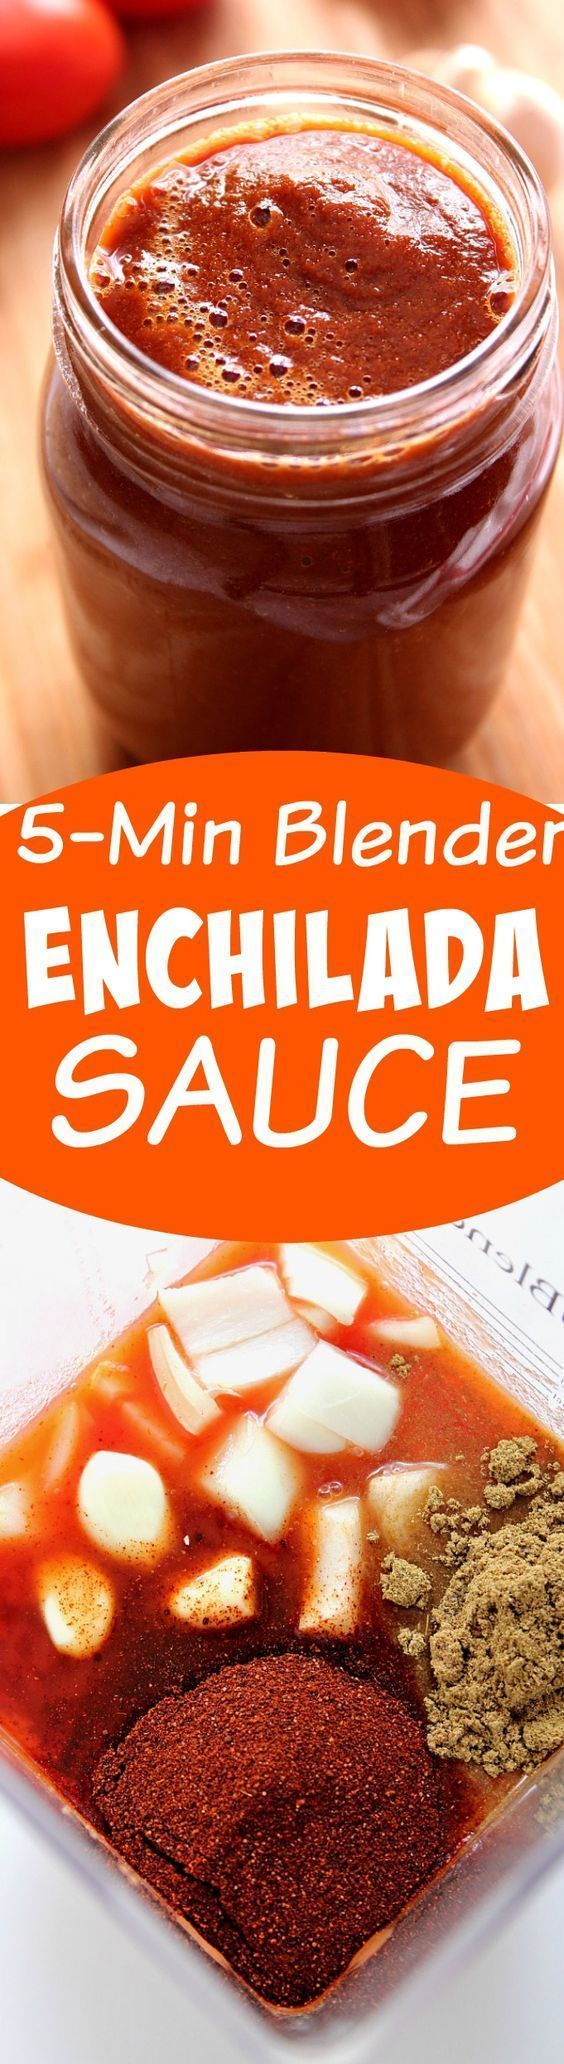 5-Minute Blender Enchilada Sauce Recipe - homemade enchilada sauce made with just 7 ingredients is my new favorite diy recipe. I will never buy it in a can again! (honey ham recipe)